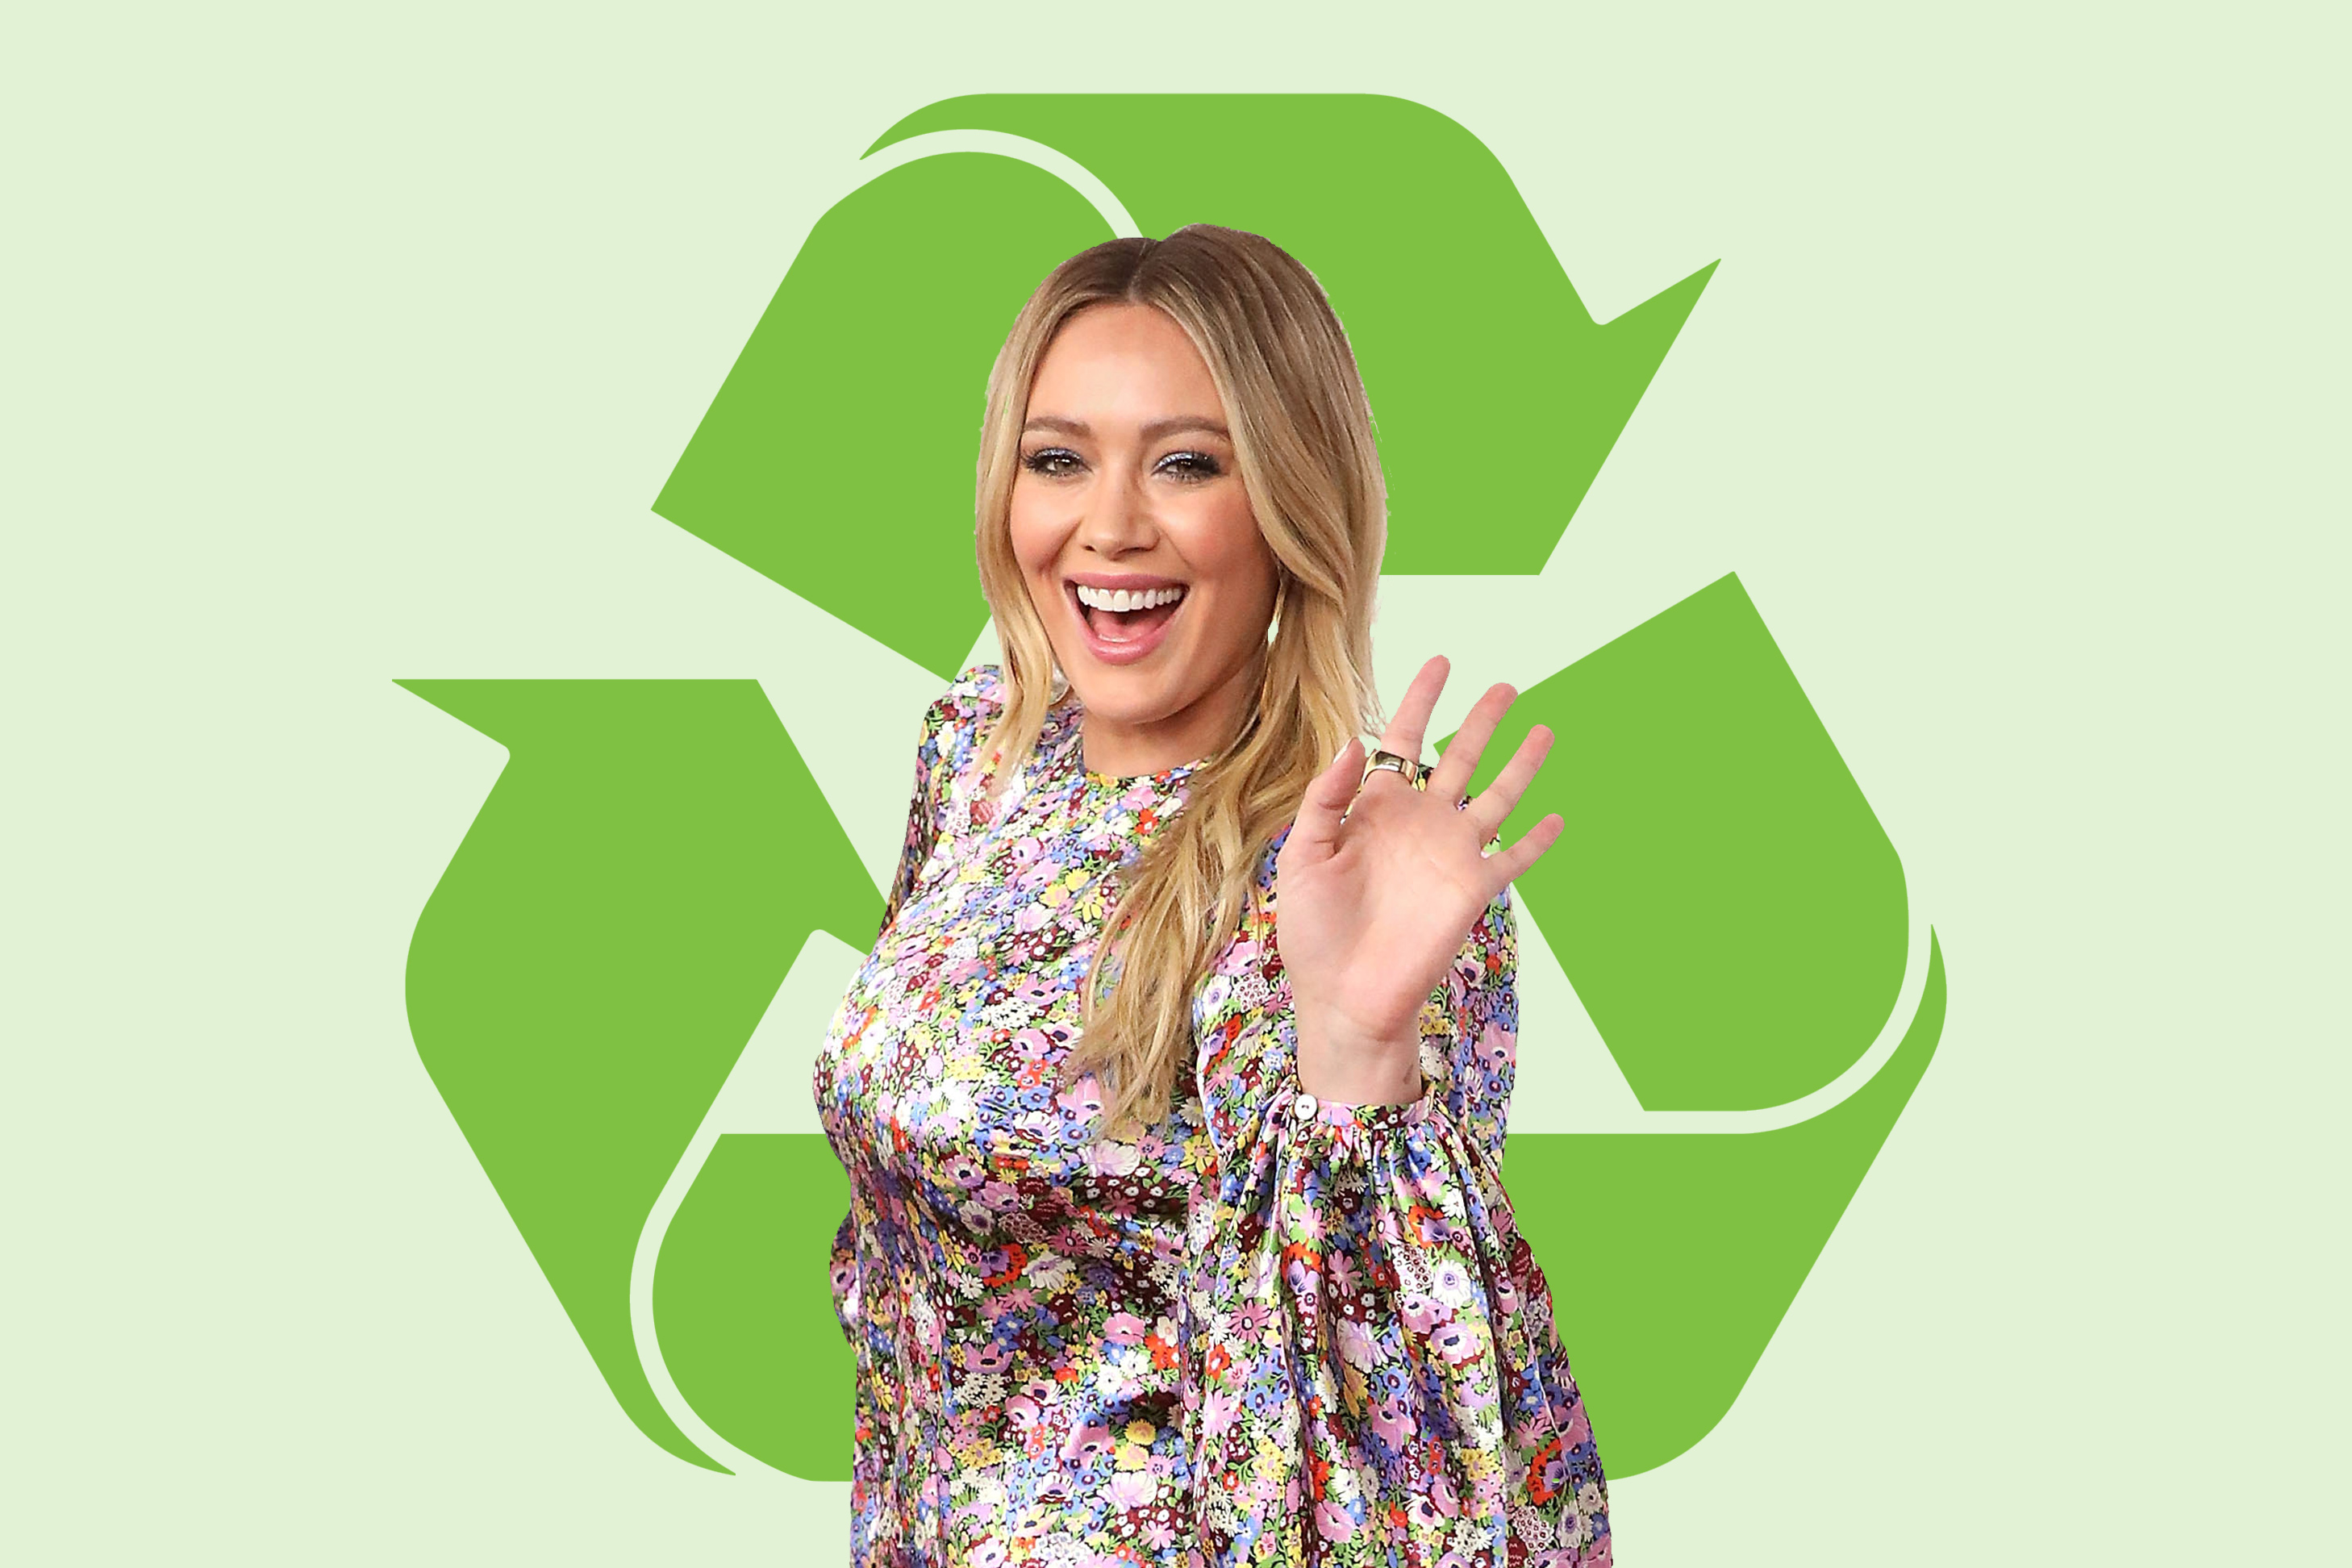 Hilary Duff Shares a Really Easy Way to Recycle as a Family